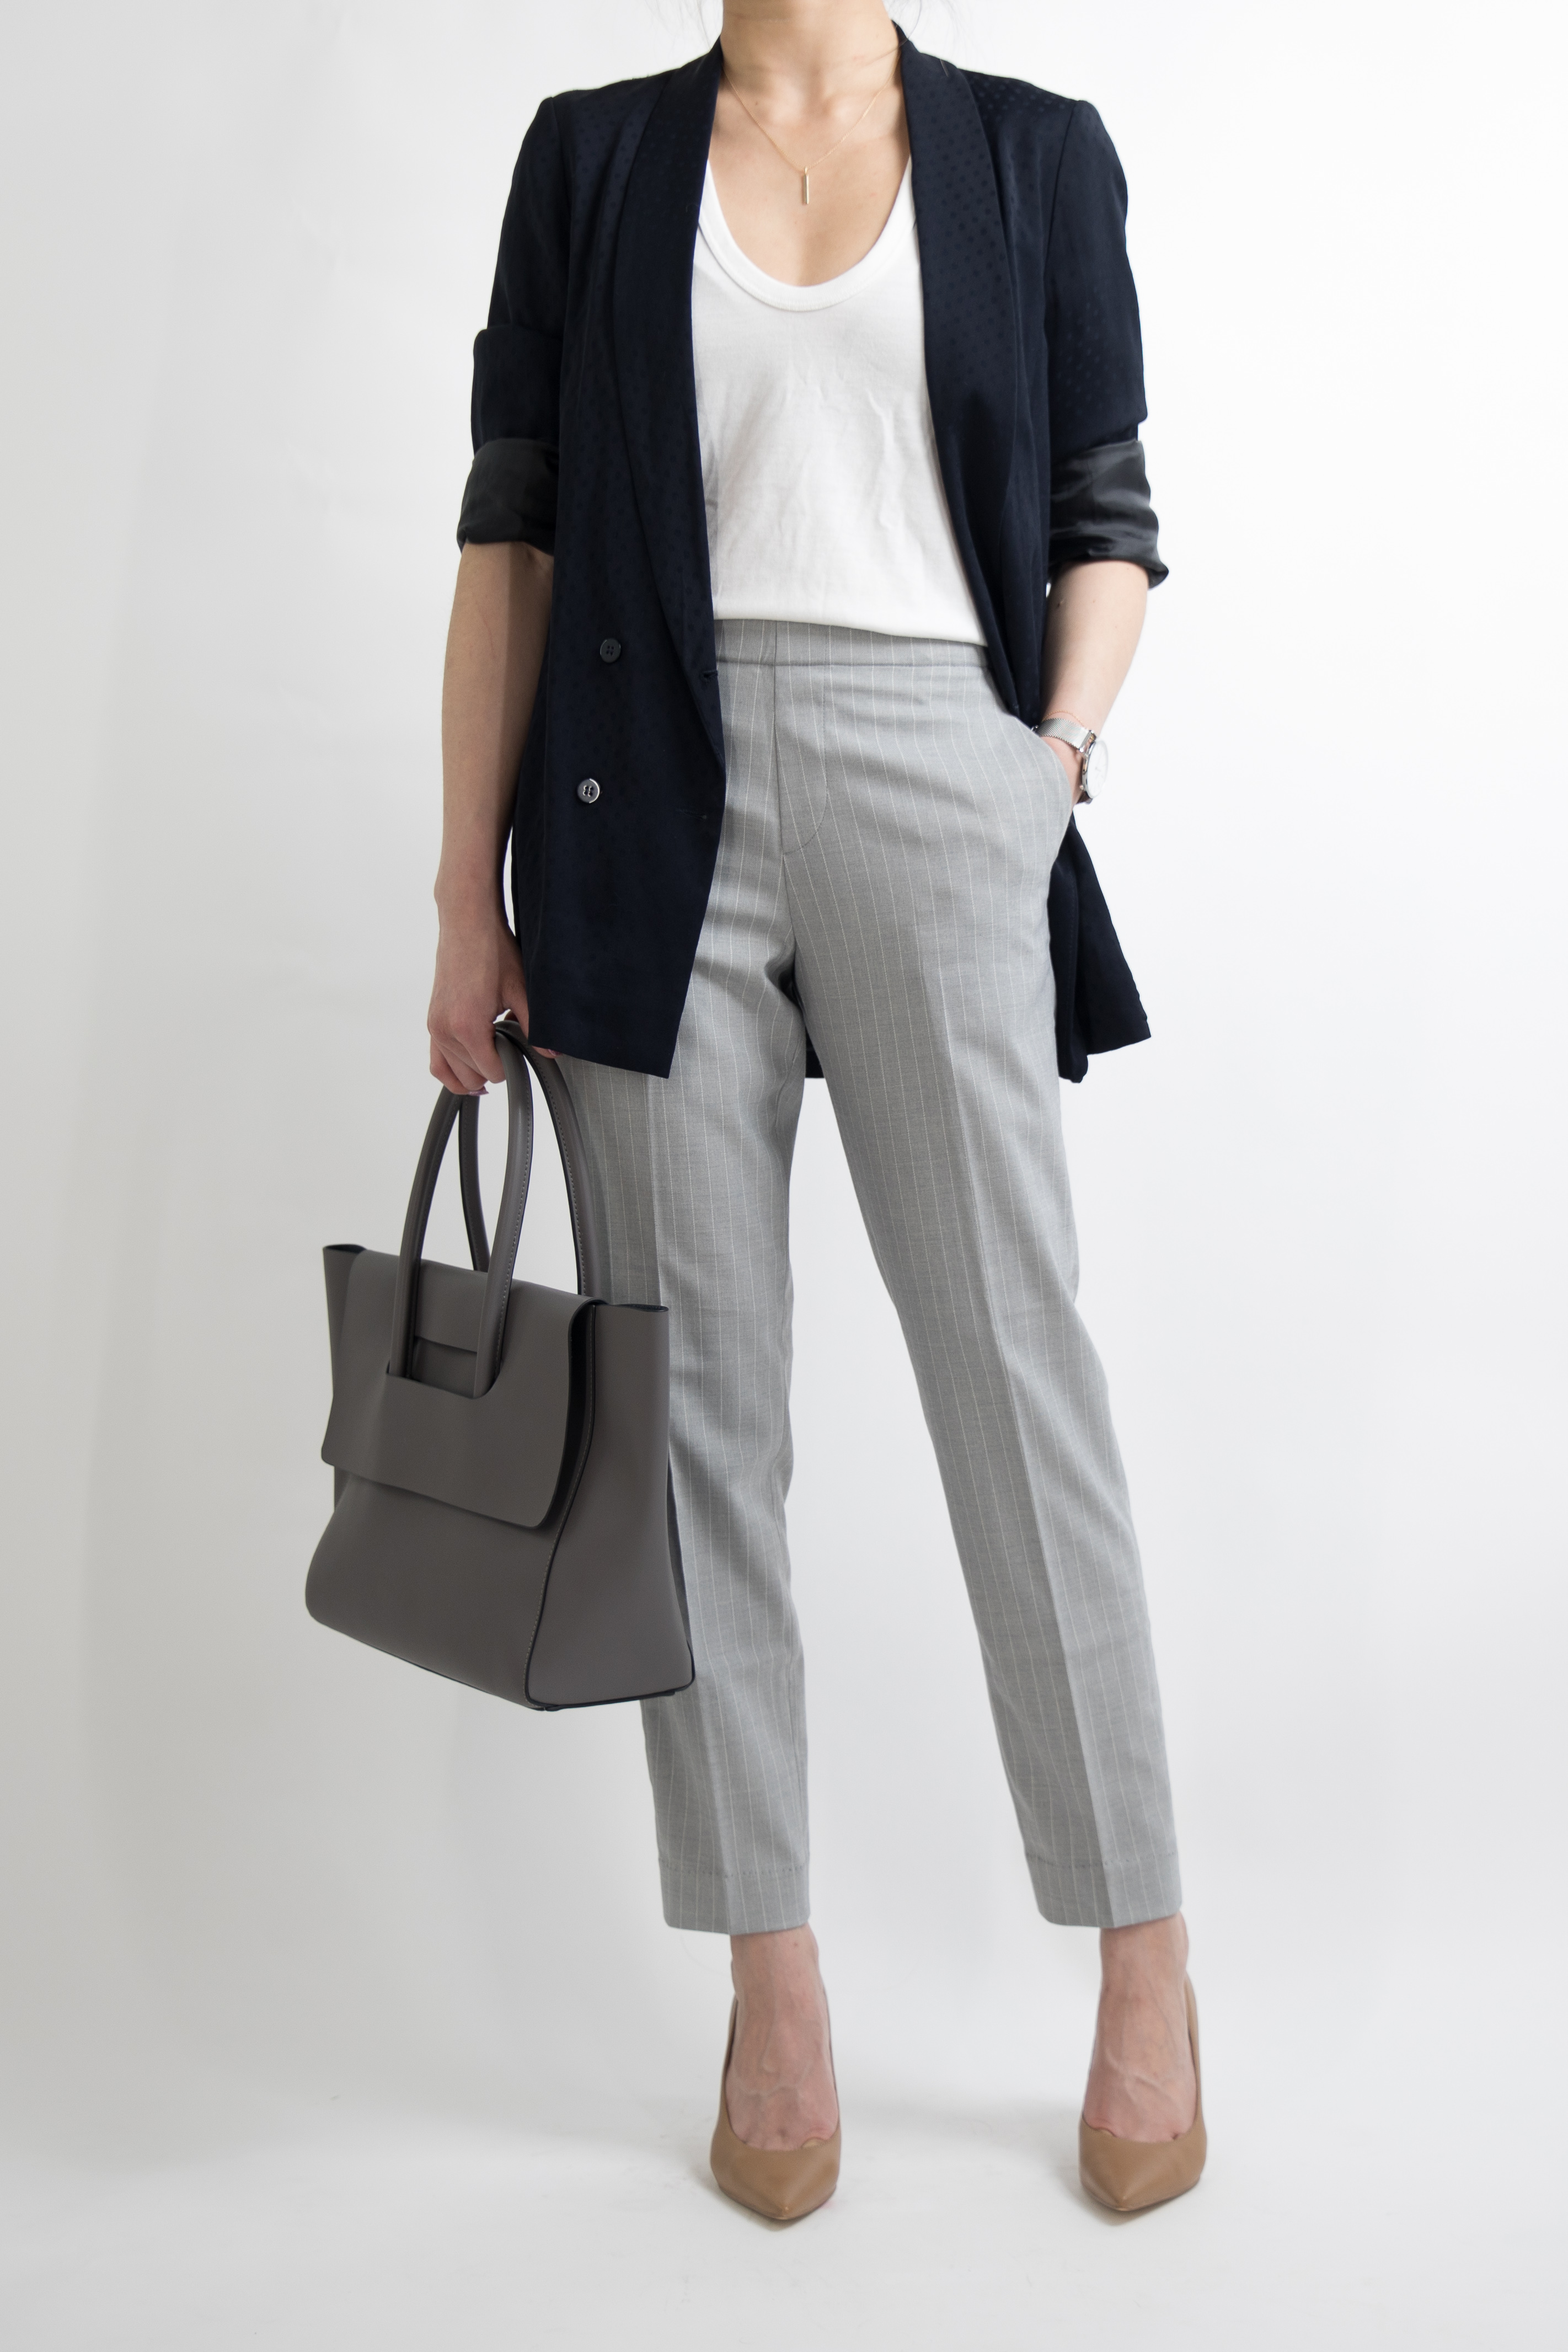 business casual looks for women photo - 1